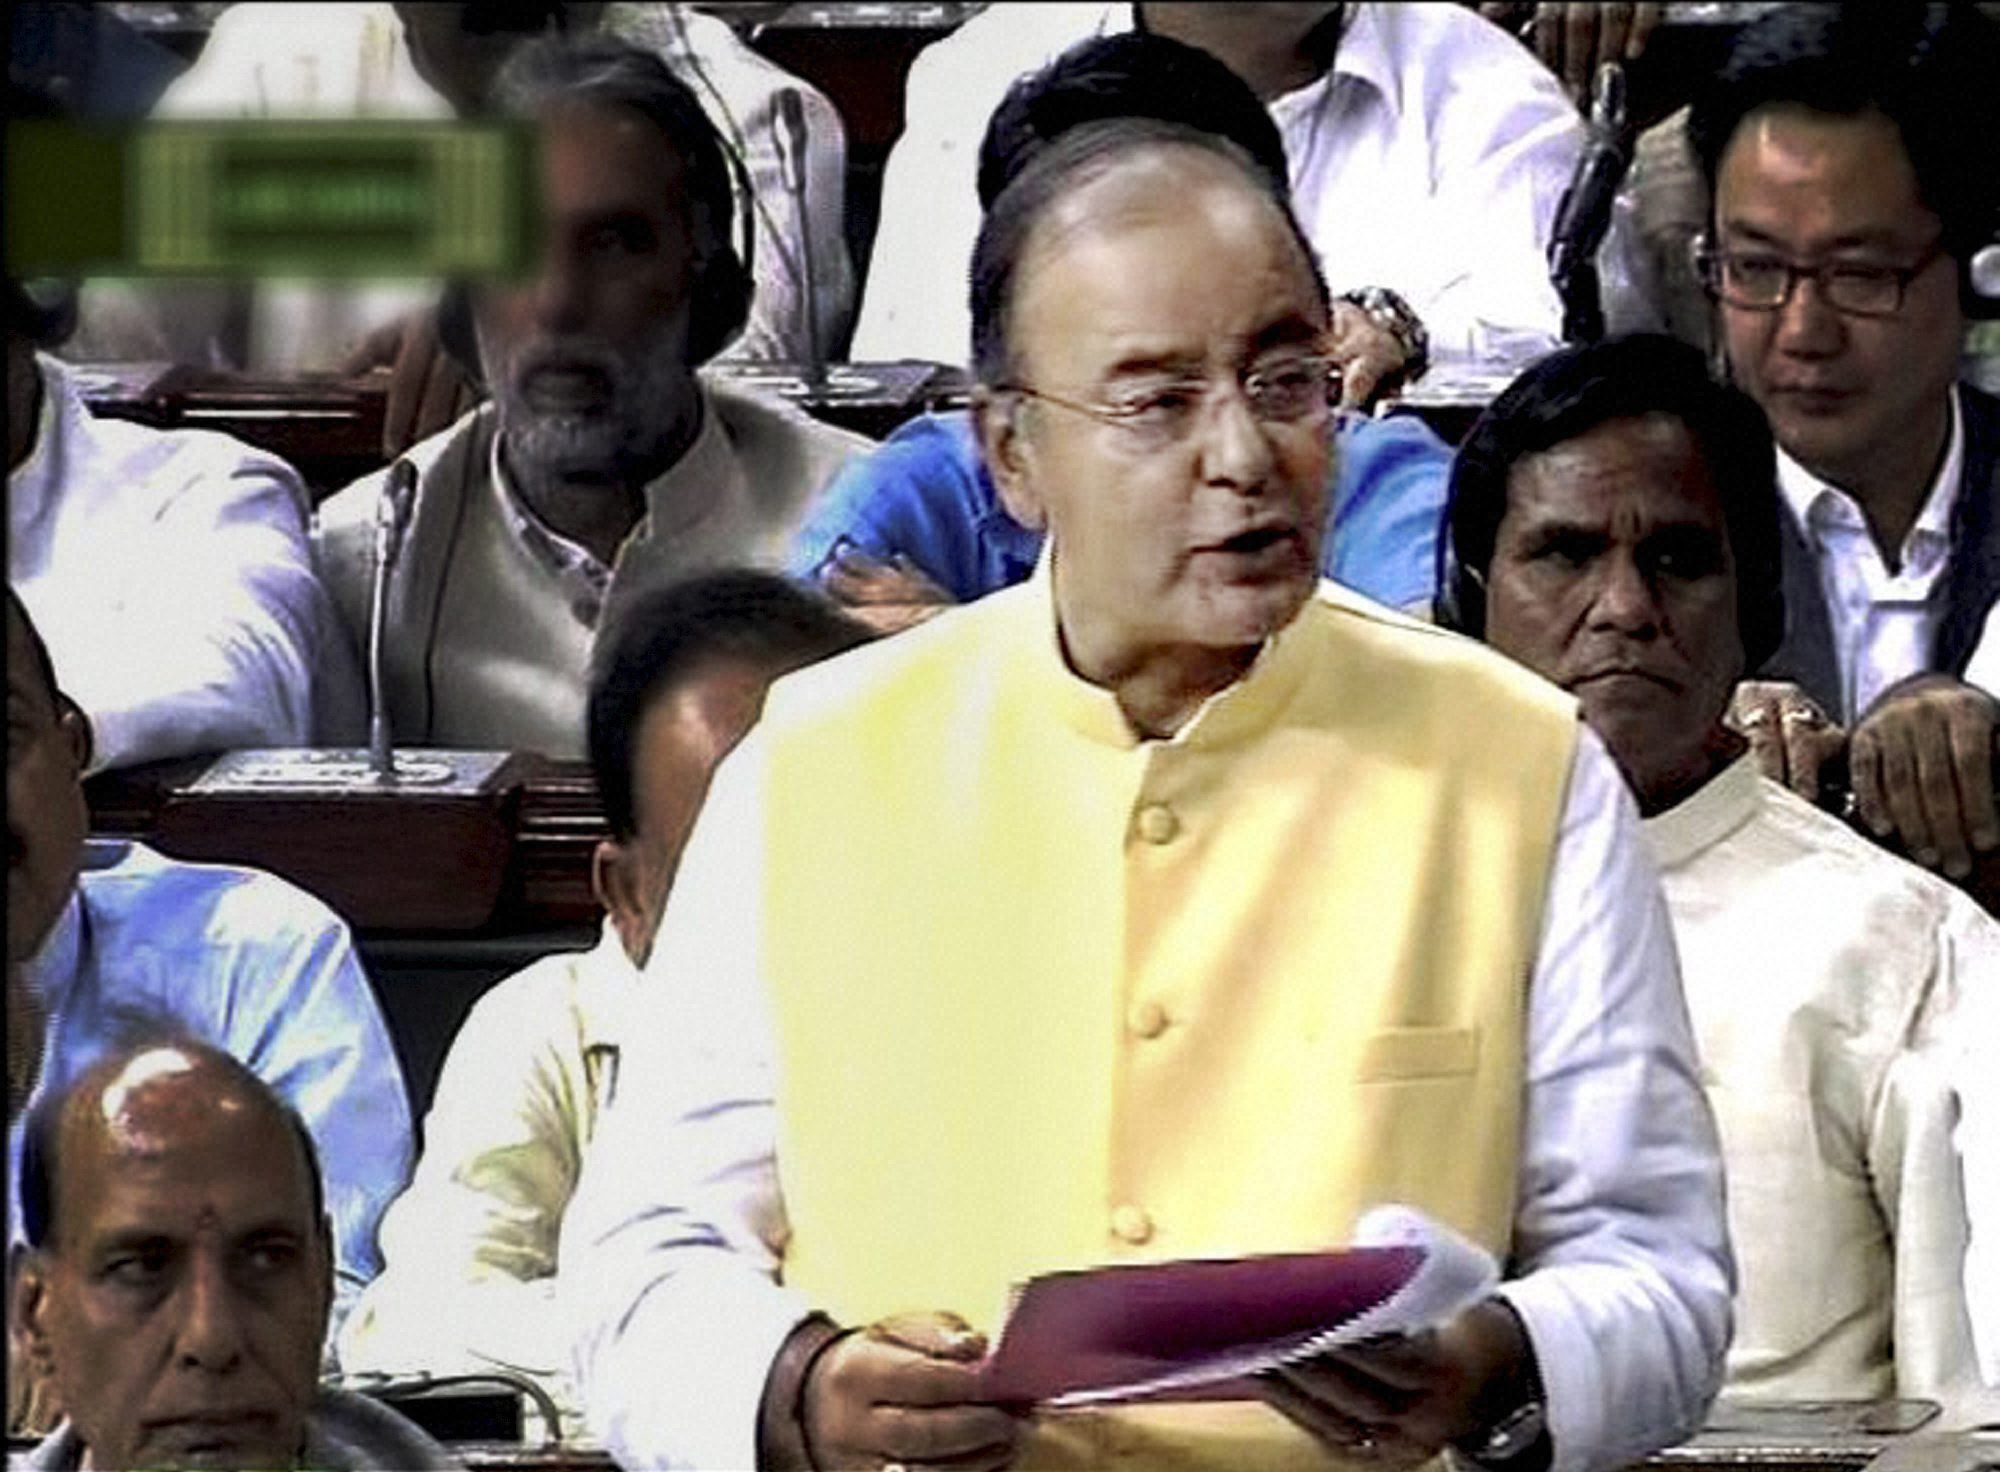 Finance Minister Arun Jaitley presenting the Union Budget 2014-15 in the Lok Sabha in New Delhi on Thursday. PTI Photo / TV GRAB